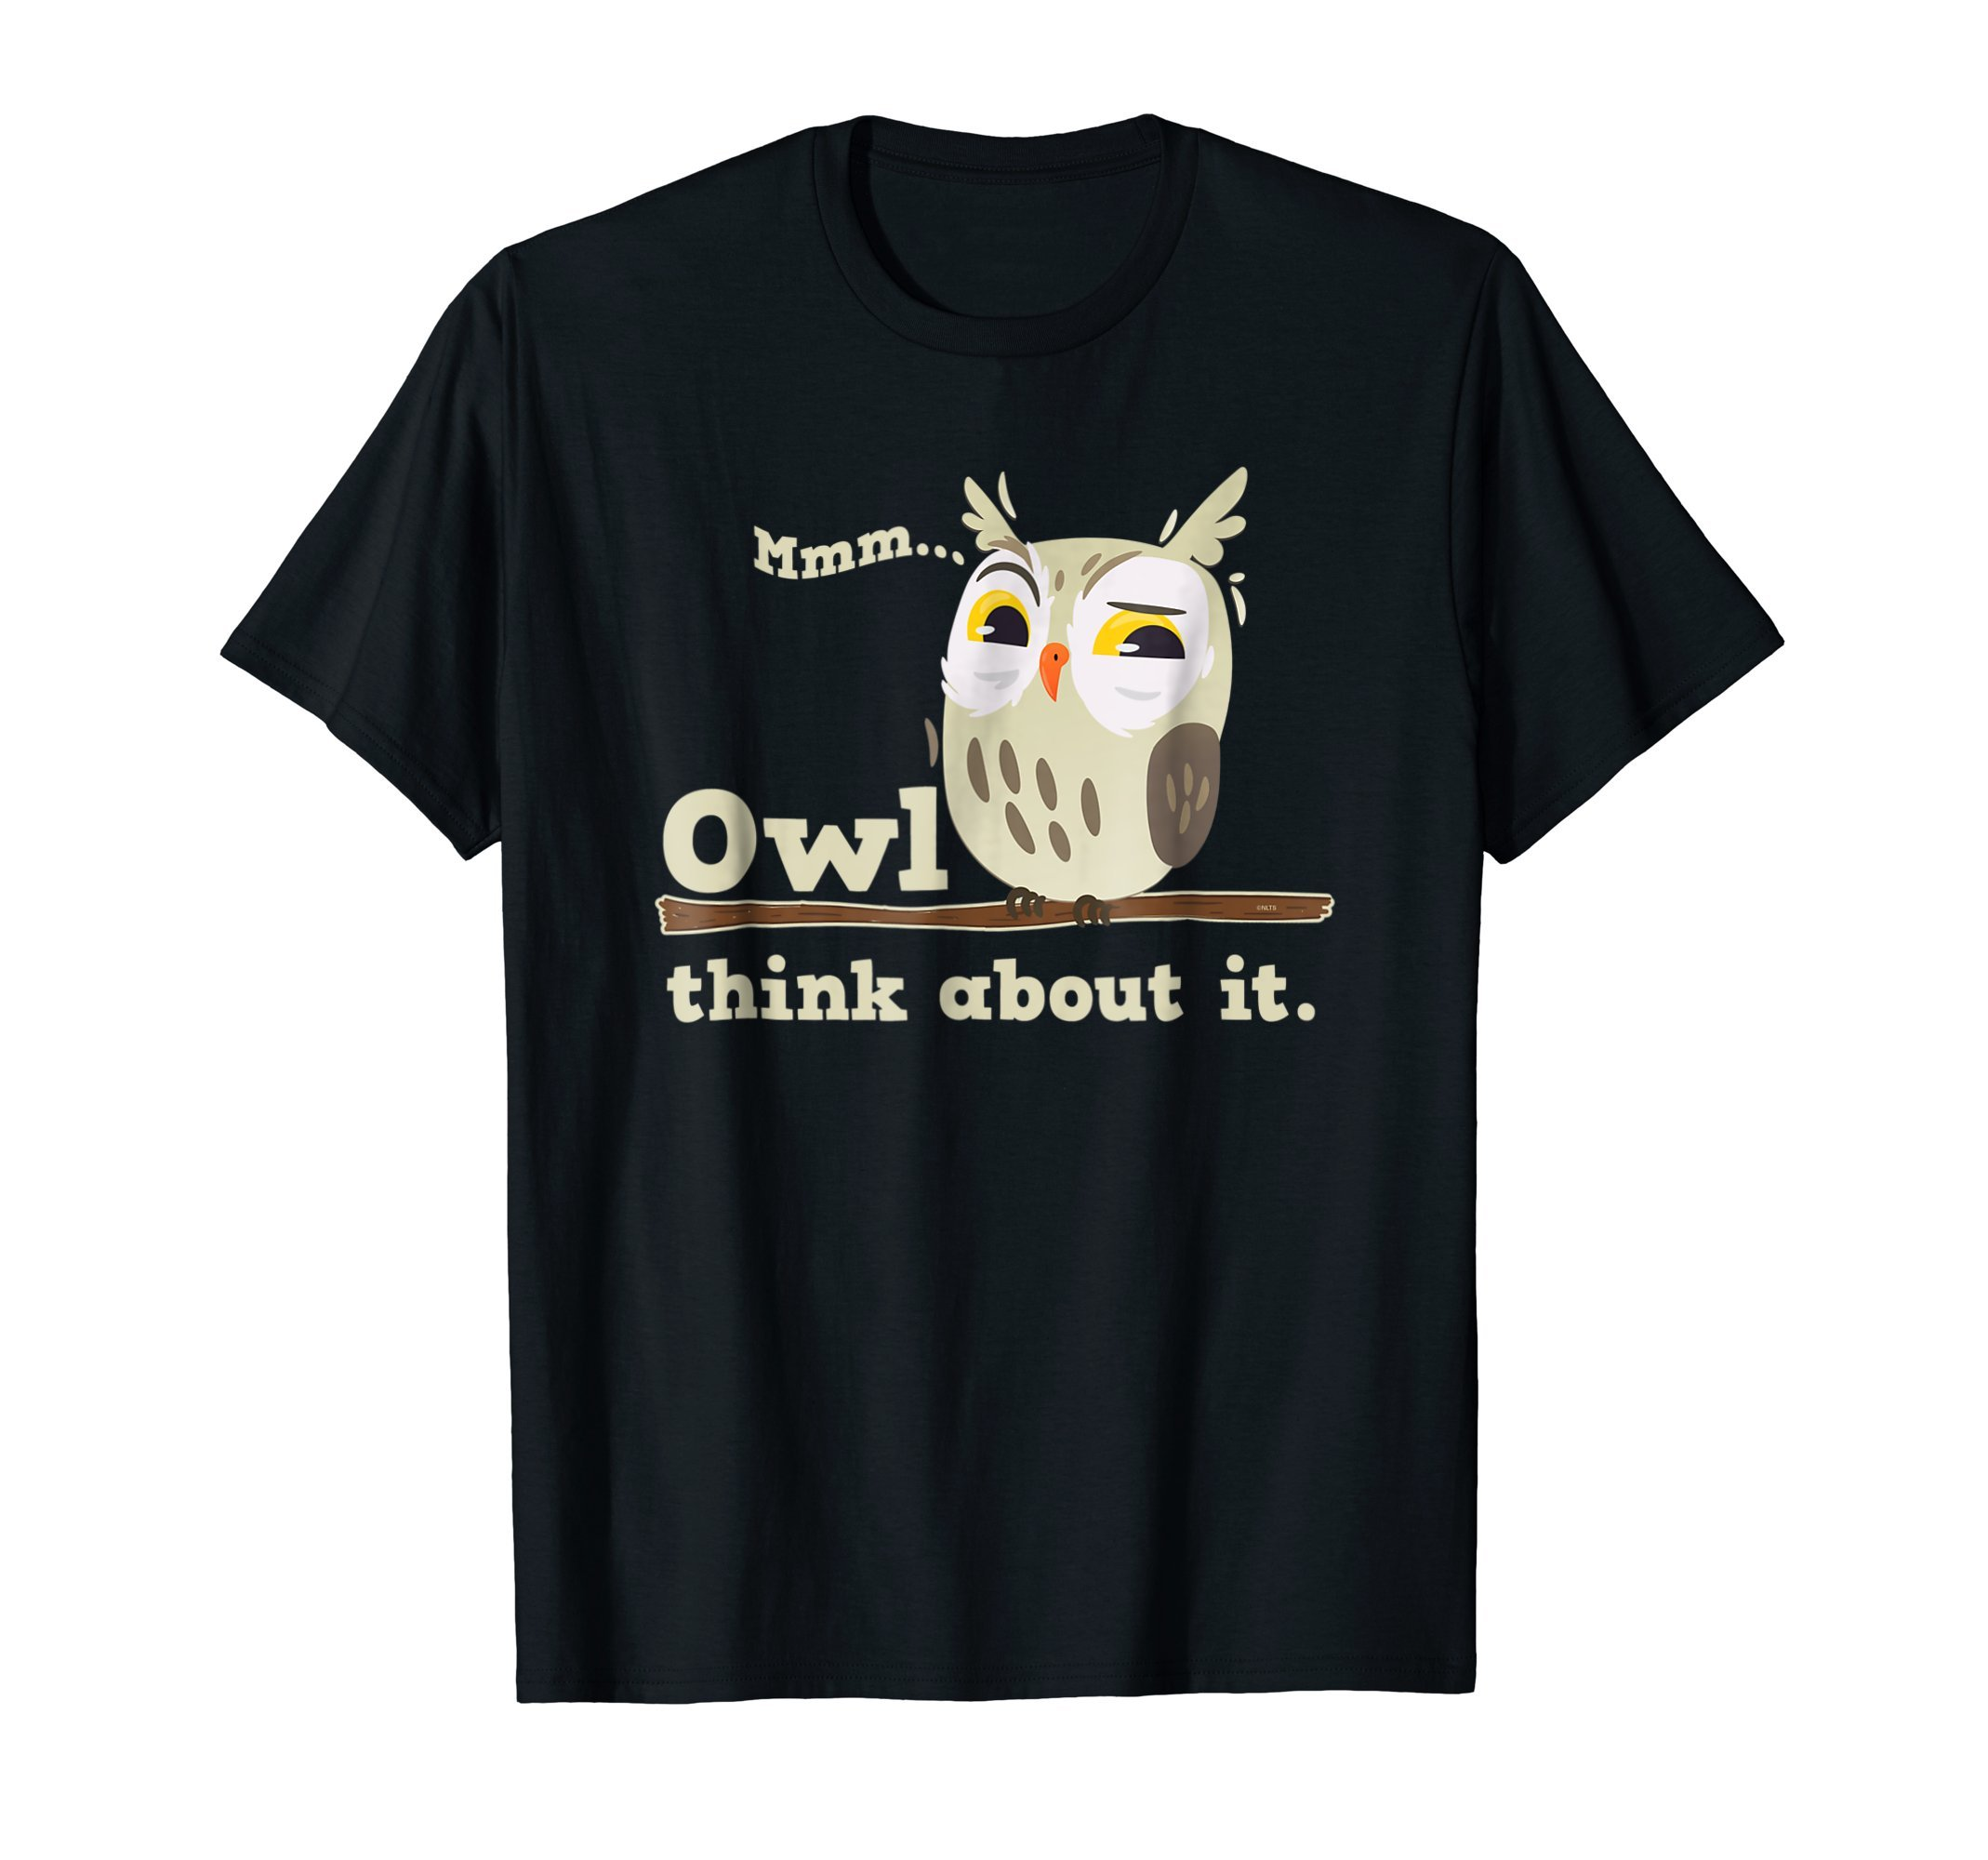 Owl-think-about-it-Owl-Funny-Humor-Cute-T-Shirt-Tee-Shirt